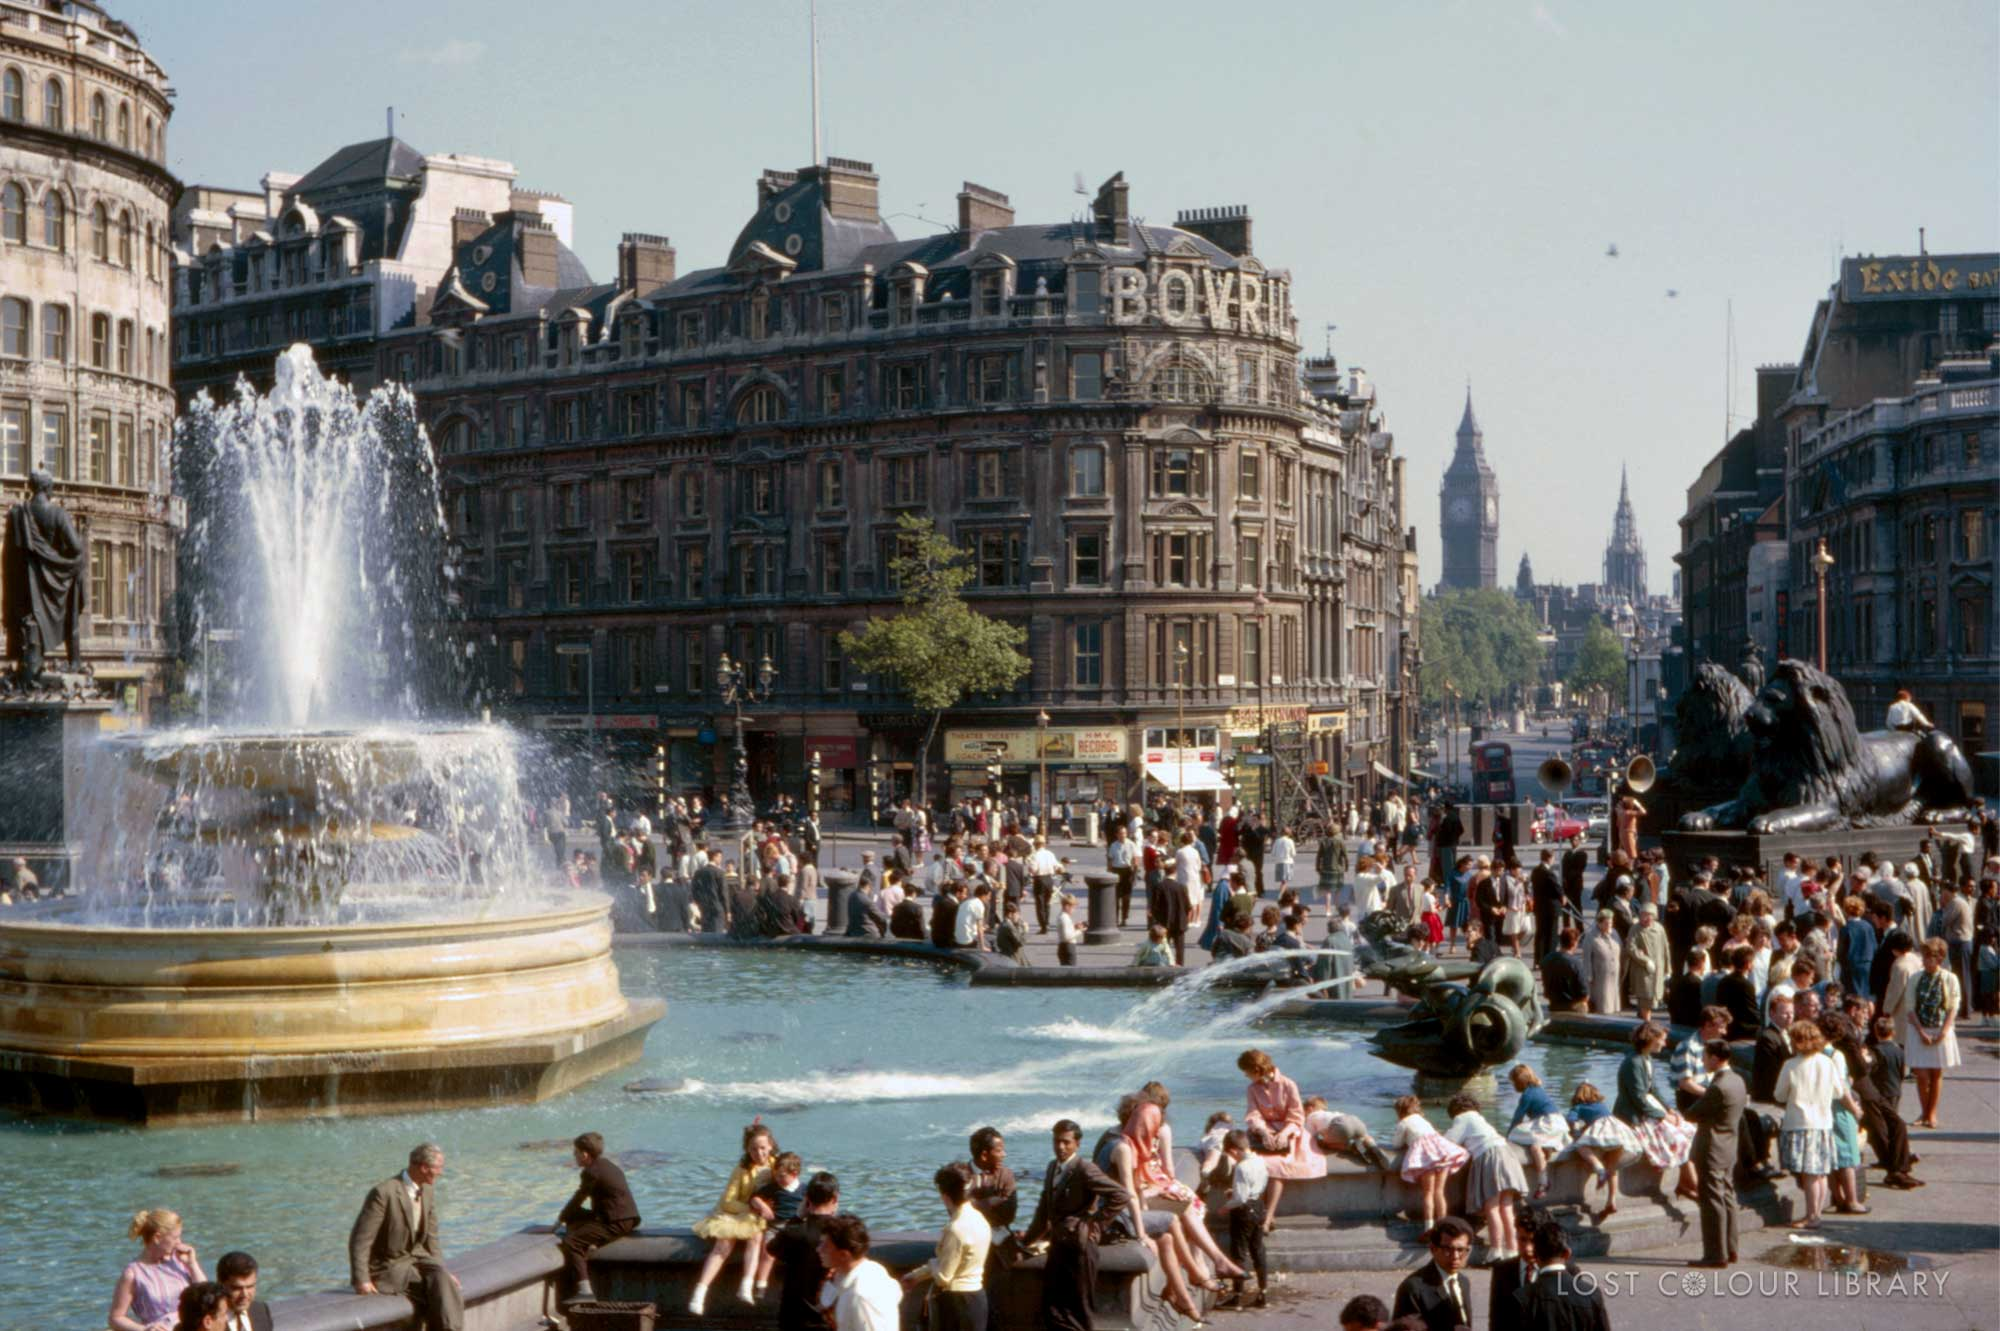 lcl-ww-trafalgar-square-1963-site-wm.jpg